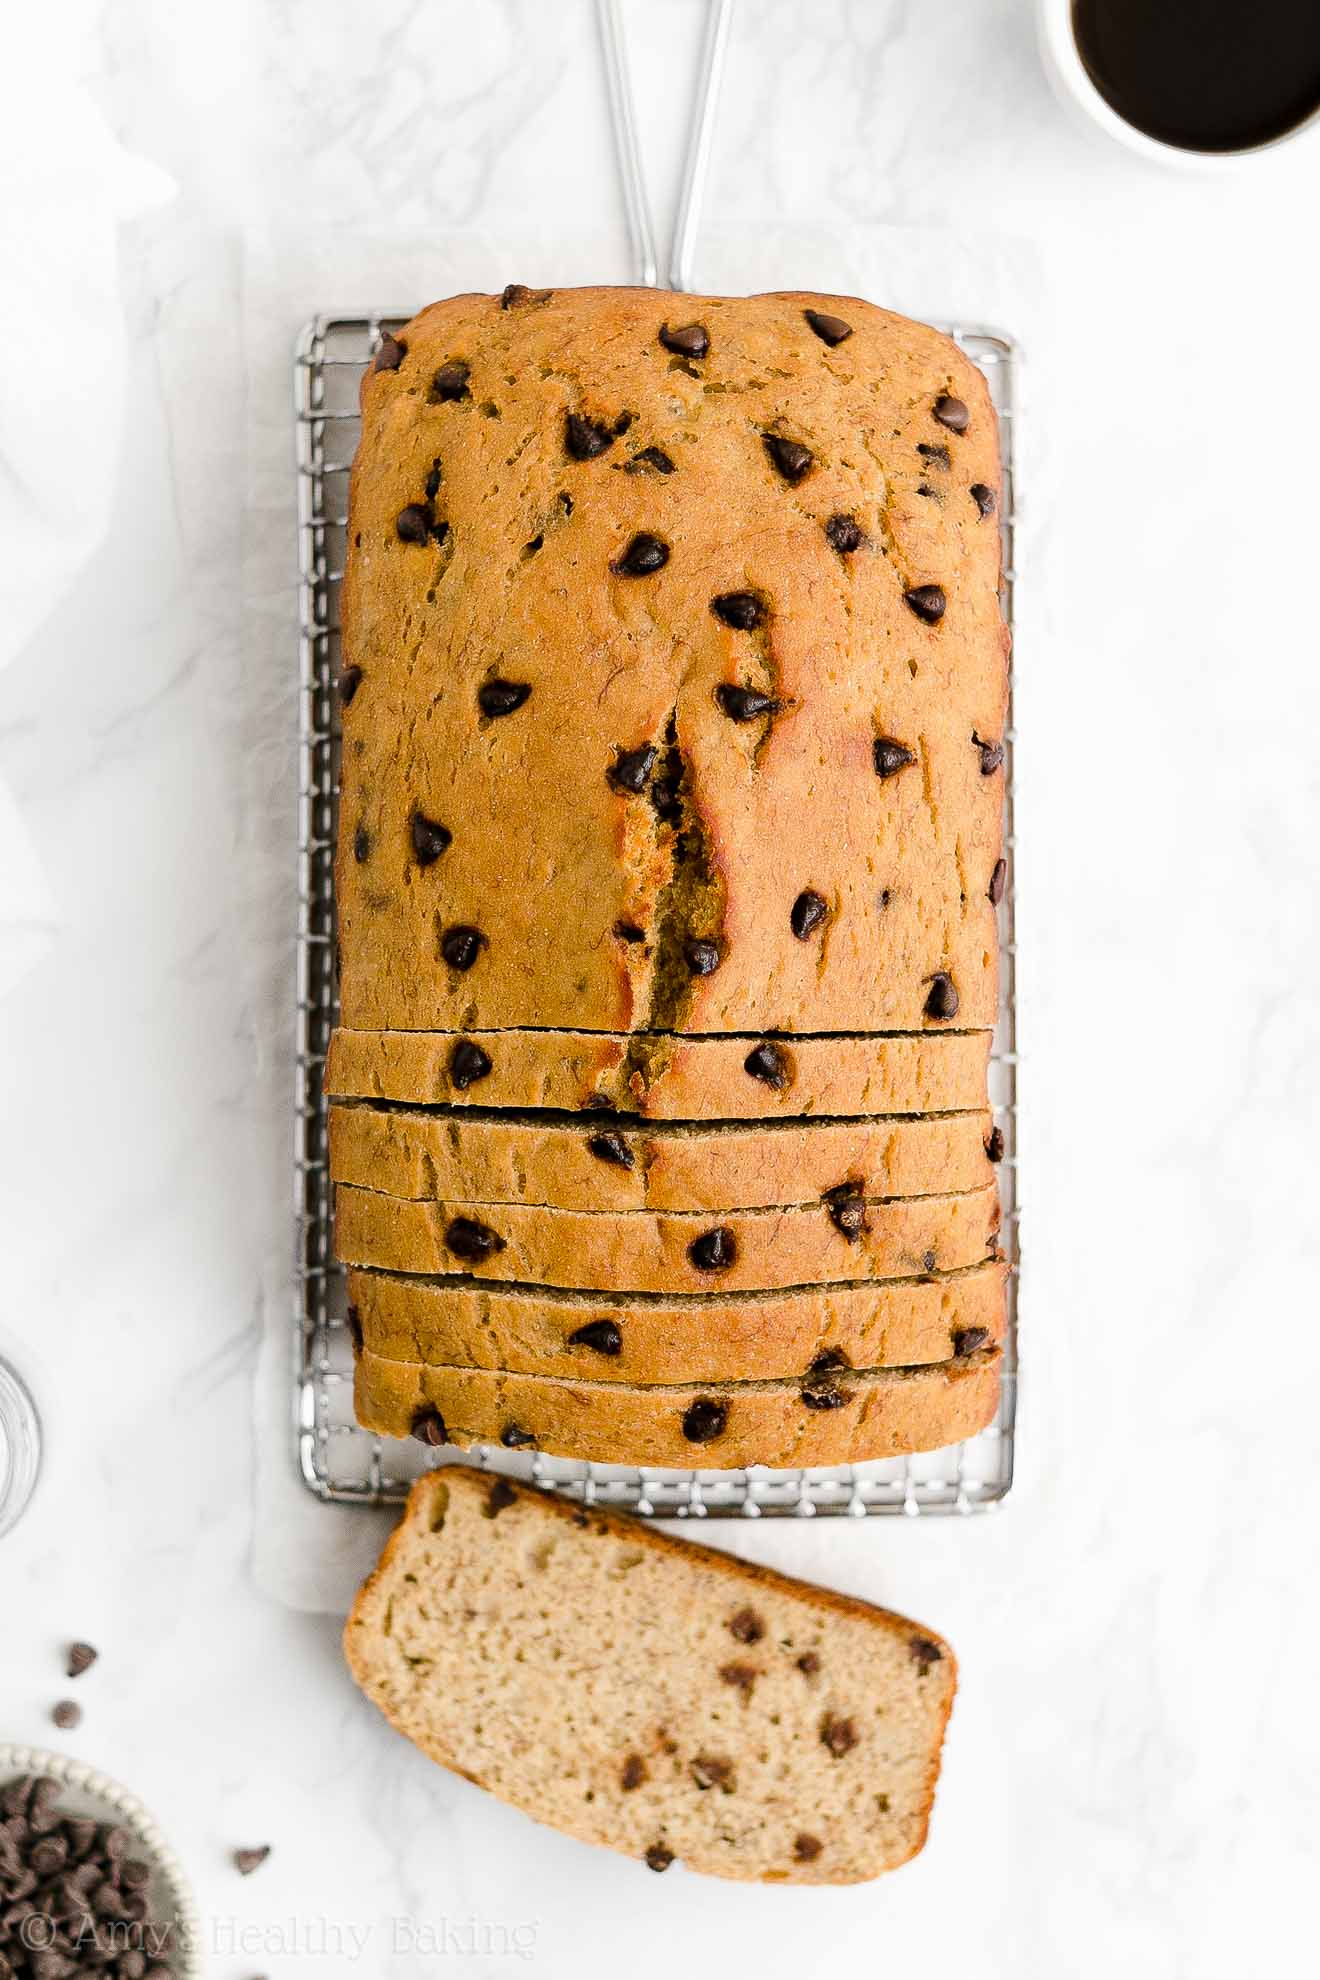 Best Easy Healthy Clean Eating No Sugar Moist Chocolate Chip Banana Bread